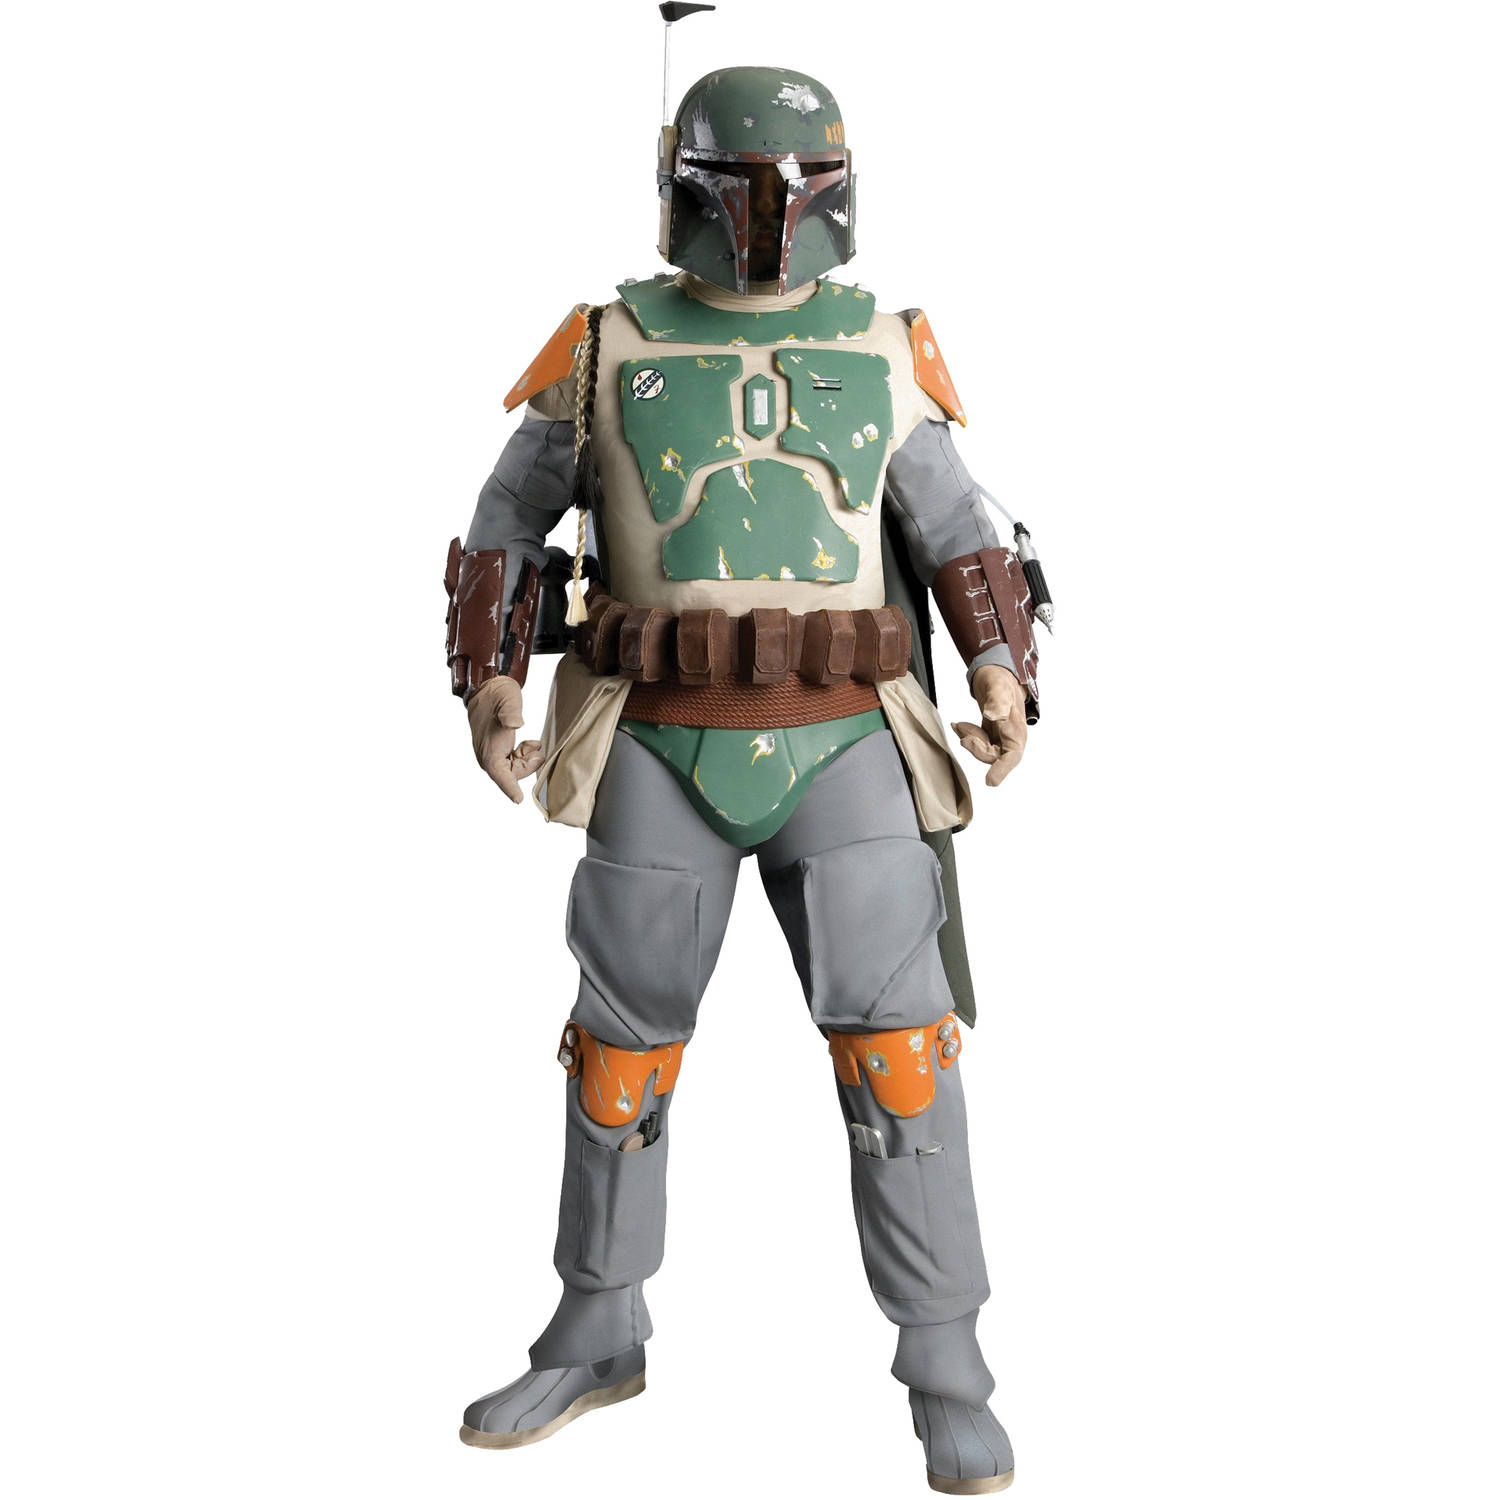 Star Wars Boba Fett Supreme Adult Halloween Costume